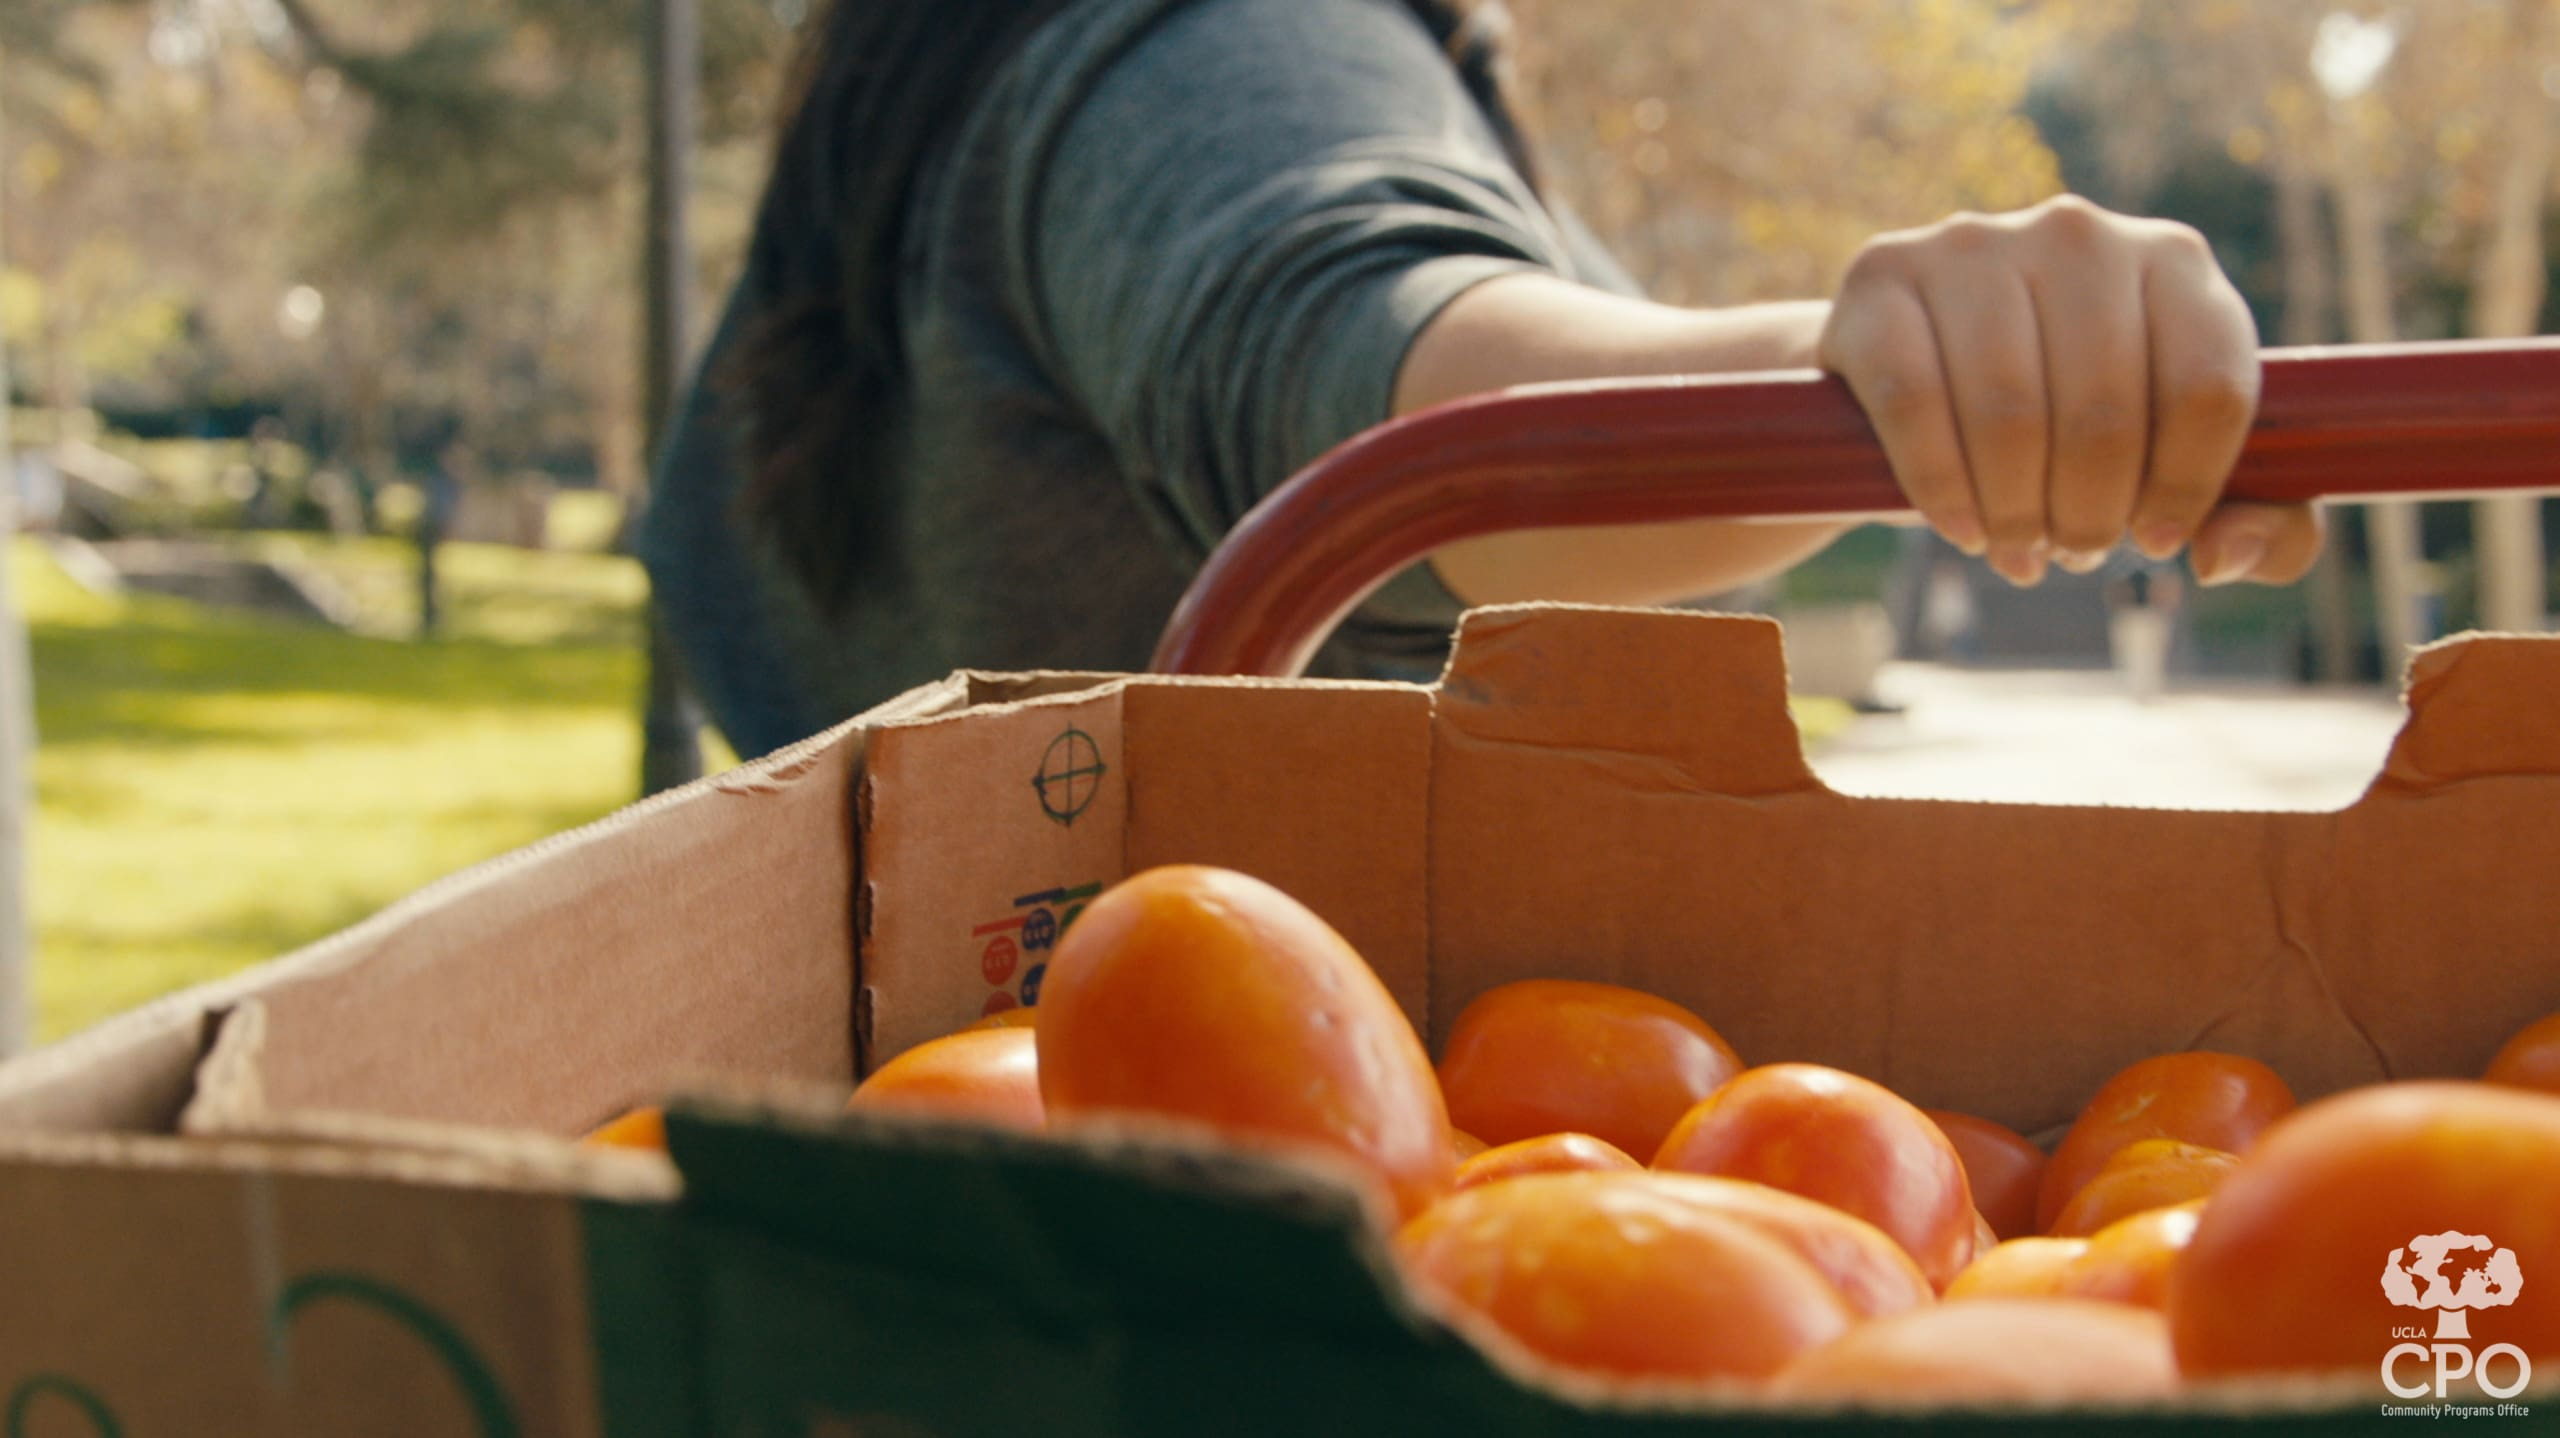 Students bring fresh produce to the CPO Food Closet